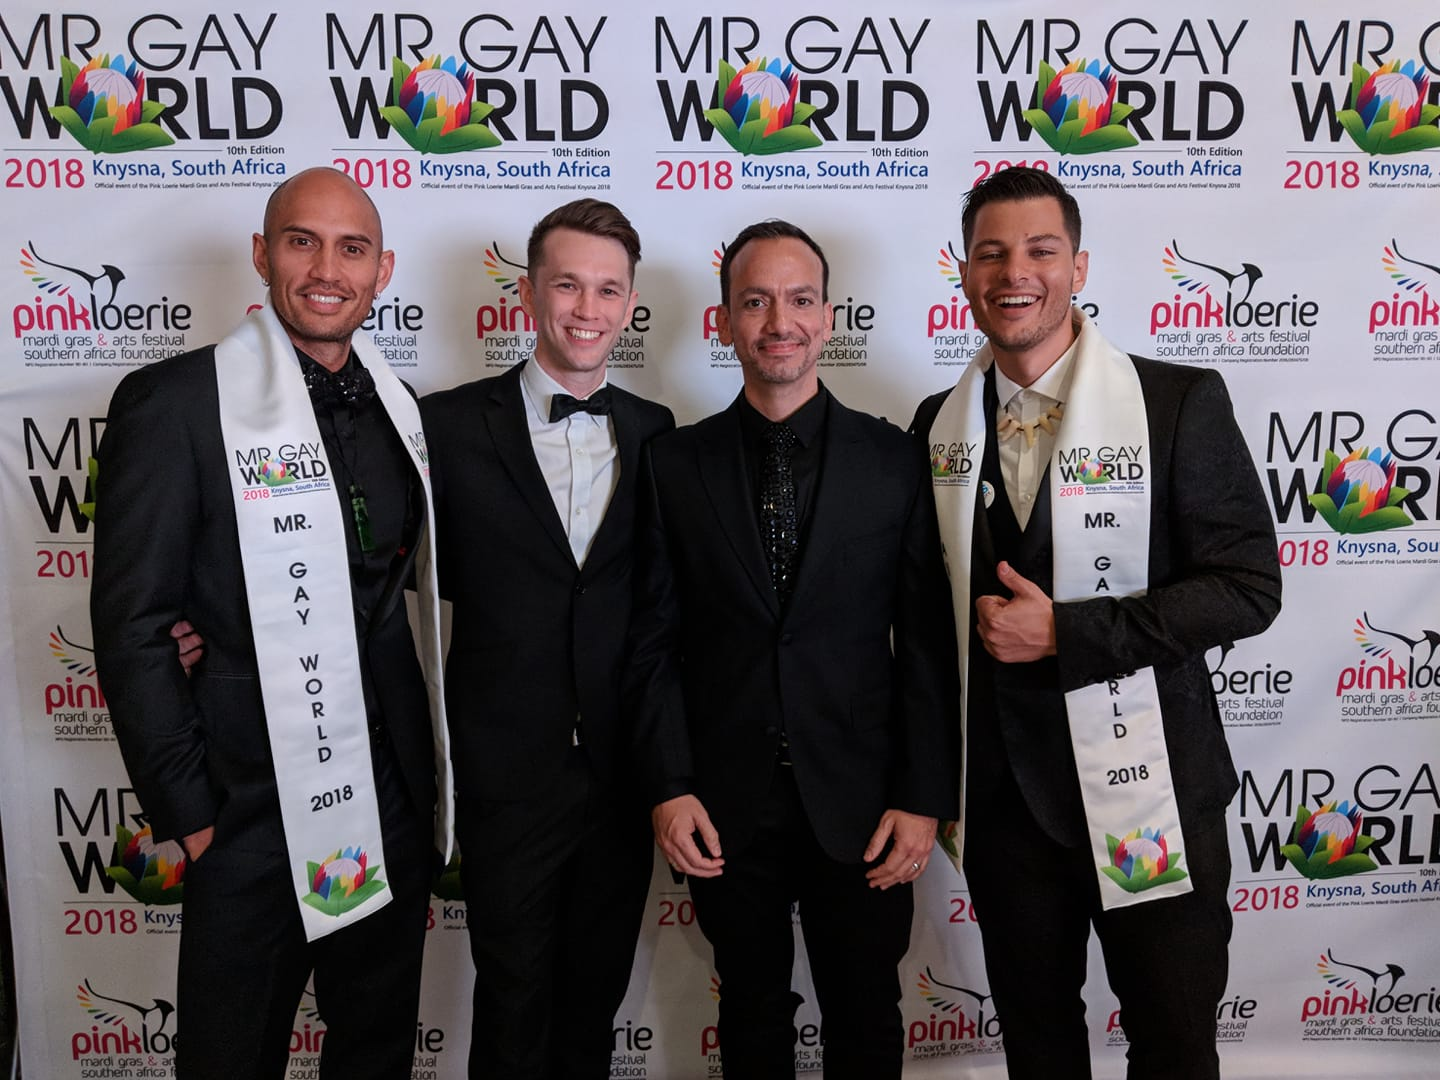 Mr Gay World 2018 Runner-up Ricky Devine-White with Mr Gay Pride Australia 2017 David Francis, President of Mr Gay World Eric Butter and Mr Gay World 2018 Jordan Bruno - (Facebook)